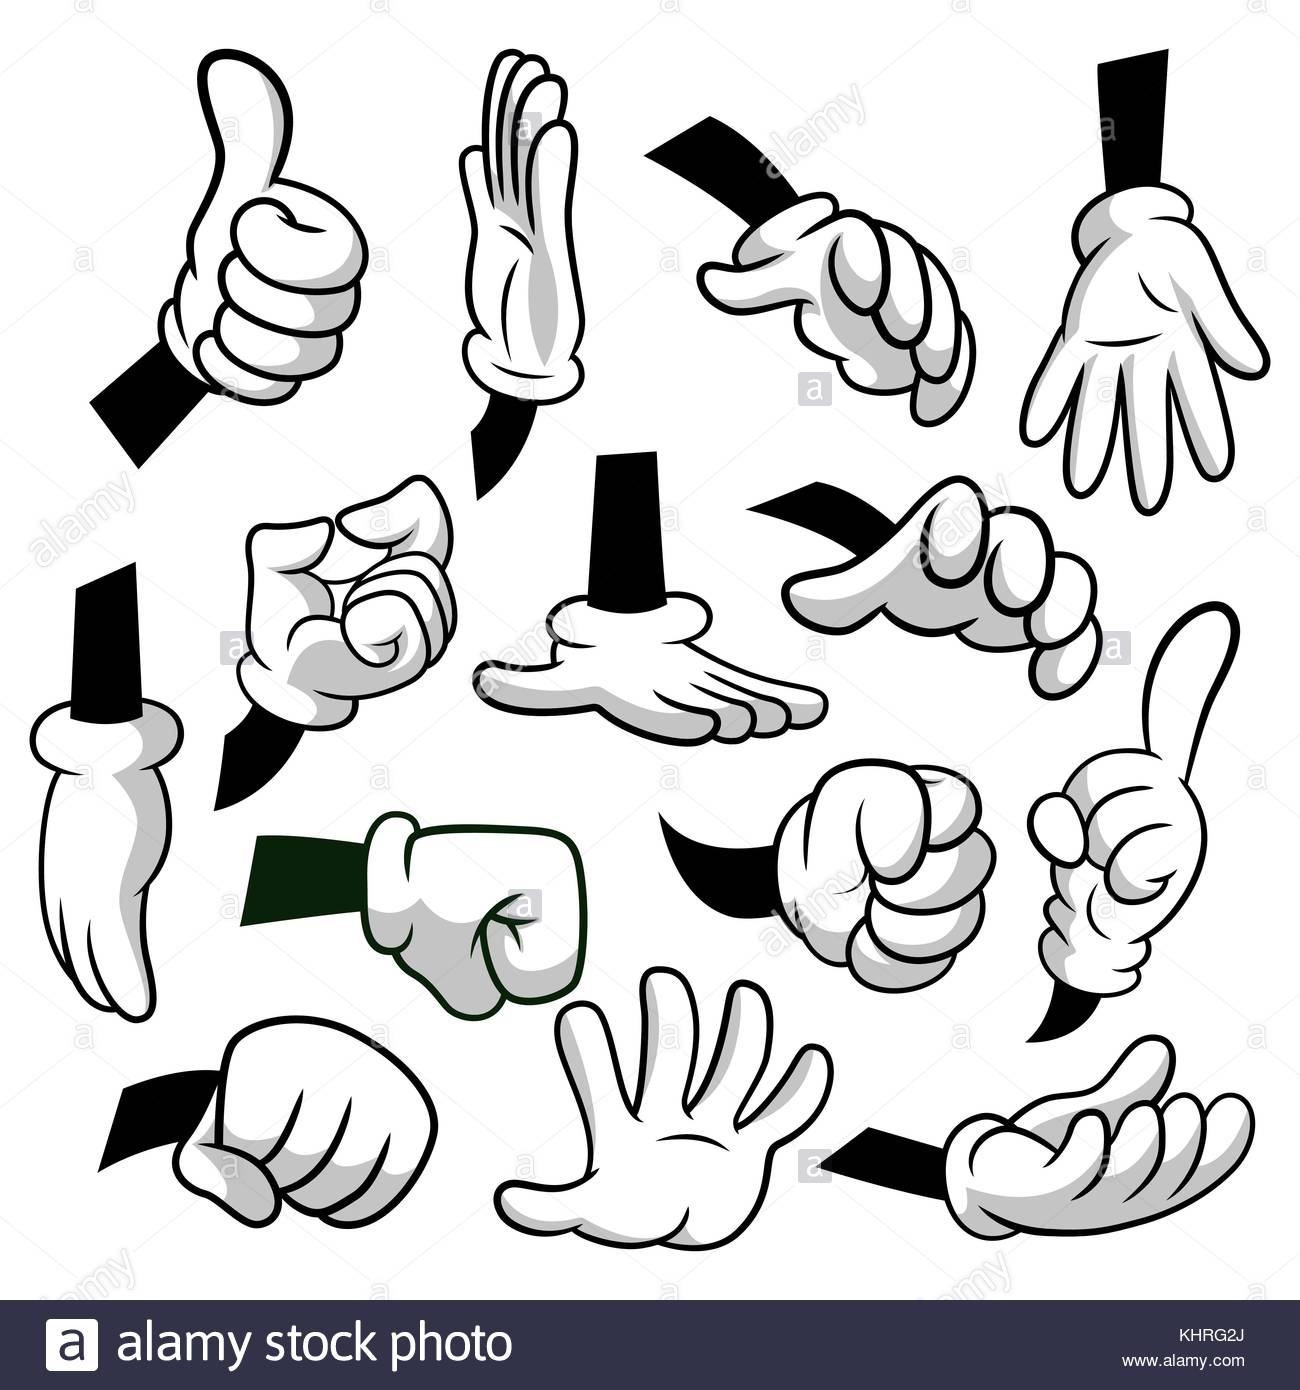 Cartoon hands with gloves icon set isolated on white background.